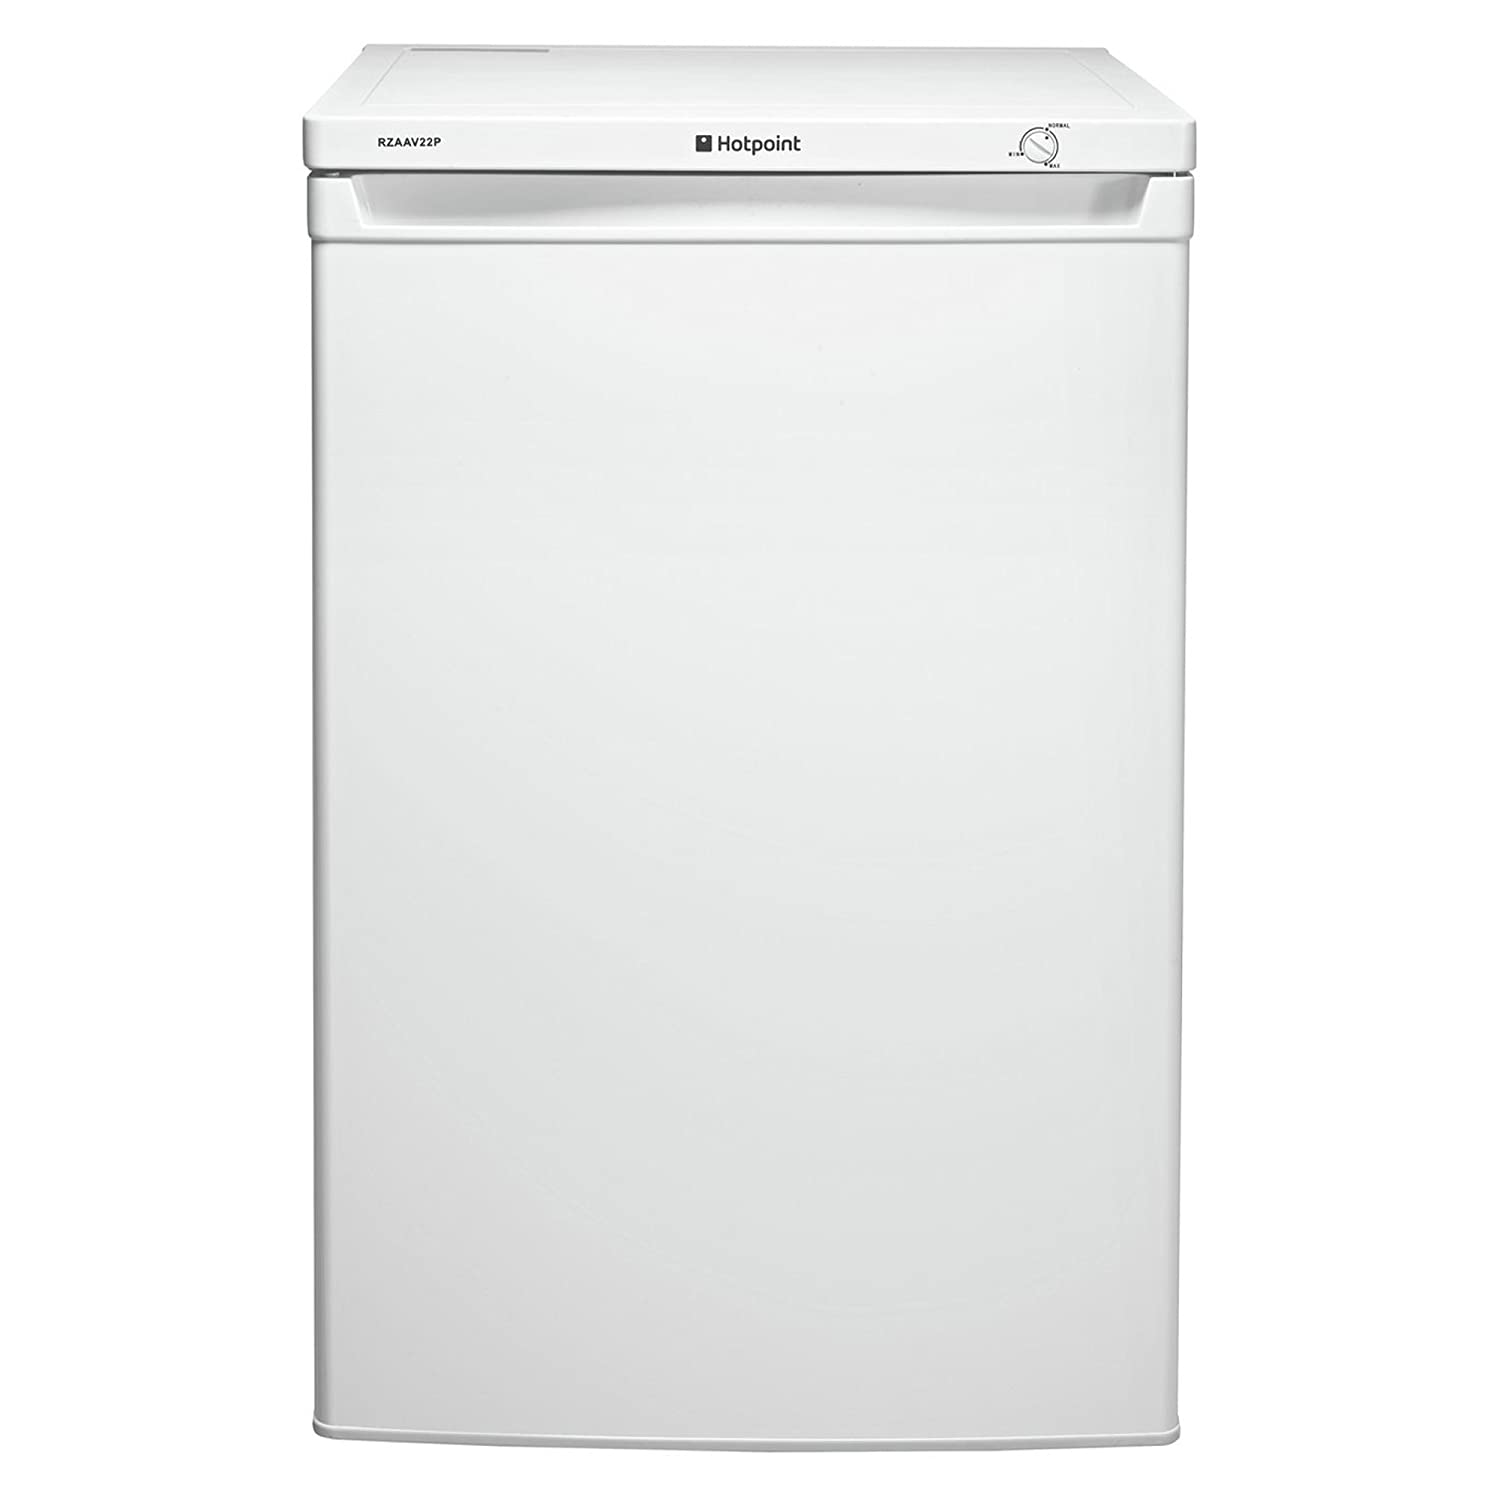 Hotpoint RZAAV22P.1.1 55cm Under Counter Freezer in White